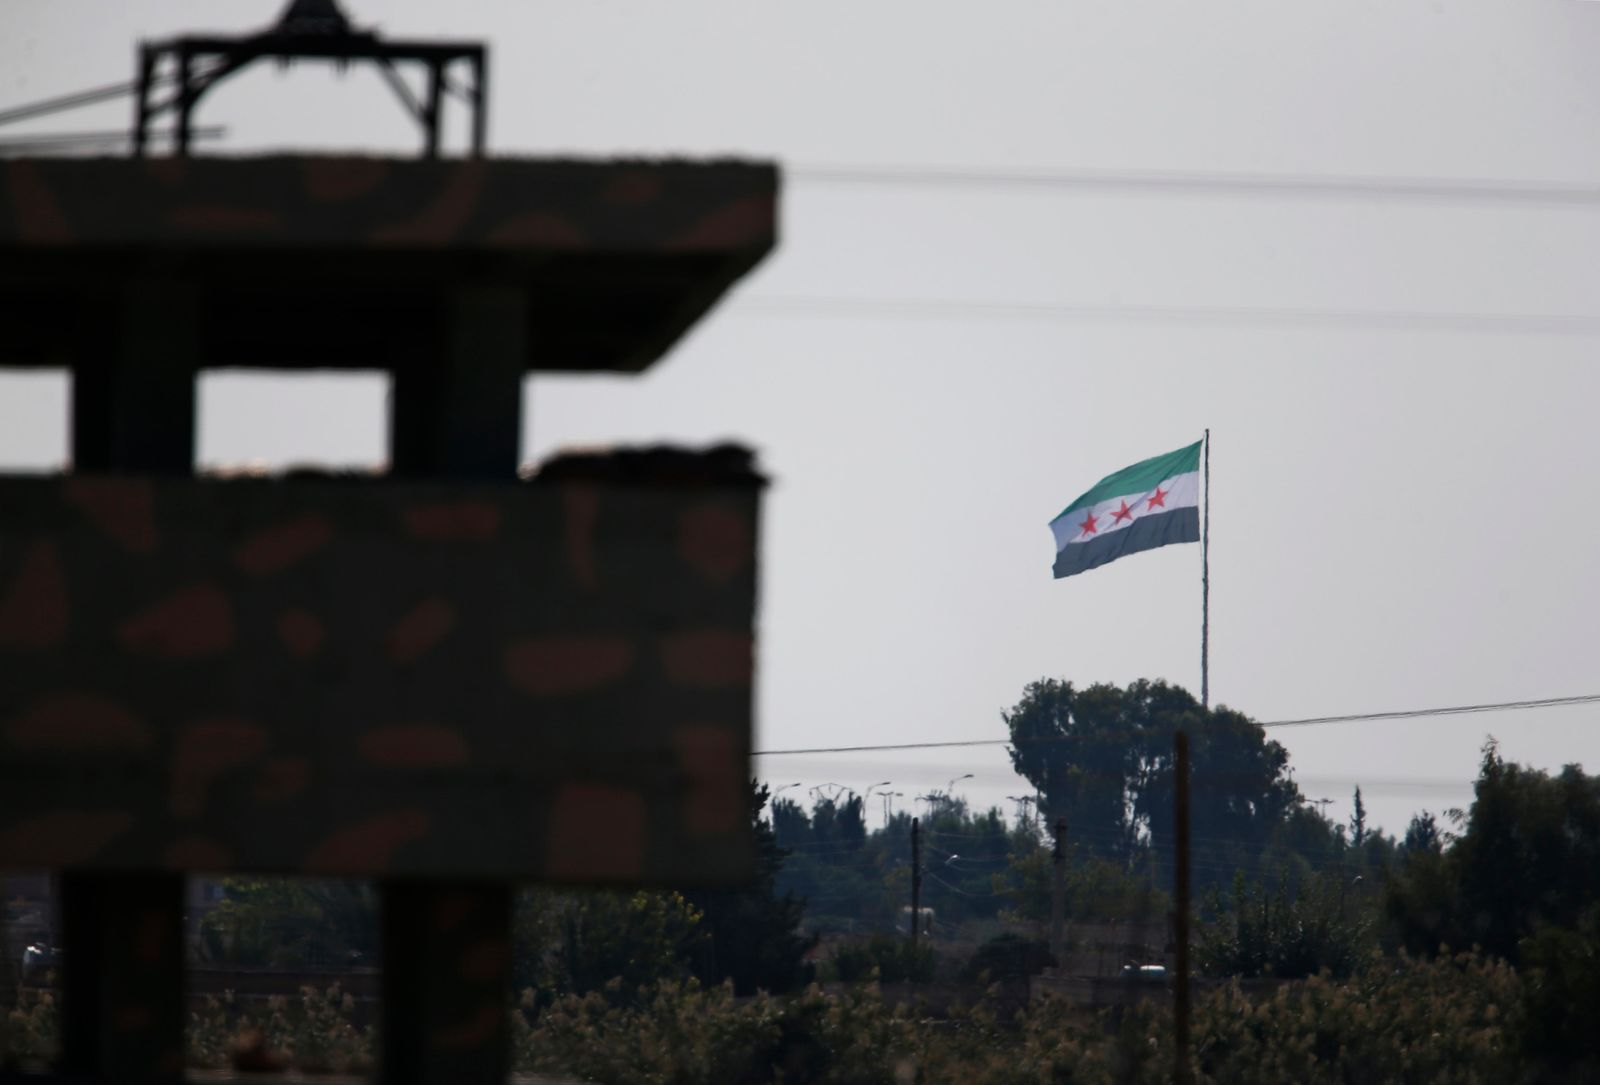 Syria's opposition flag flies on a pole in Tal Abyad, Syria, as seen from the town of Akcakale, Sanliurfa province, southeastern Turkey, Monday, Oct. 21, 2019. Turkey's President Recep Tayyip Erdogan is scheduled to meet Tuesday with Russian leader Vladimir Putin and the conflict between Turkey and the Kurds is expected to be the focus of their discussions. (AP Photo/Lefteris Pitarakis)